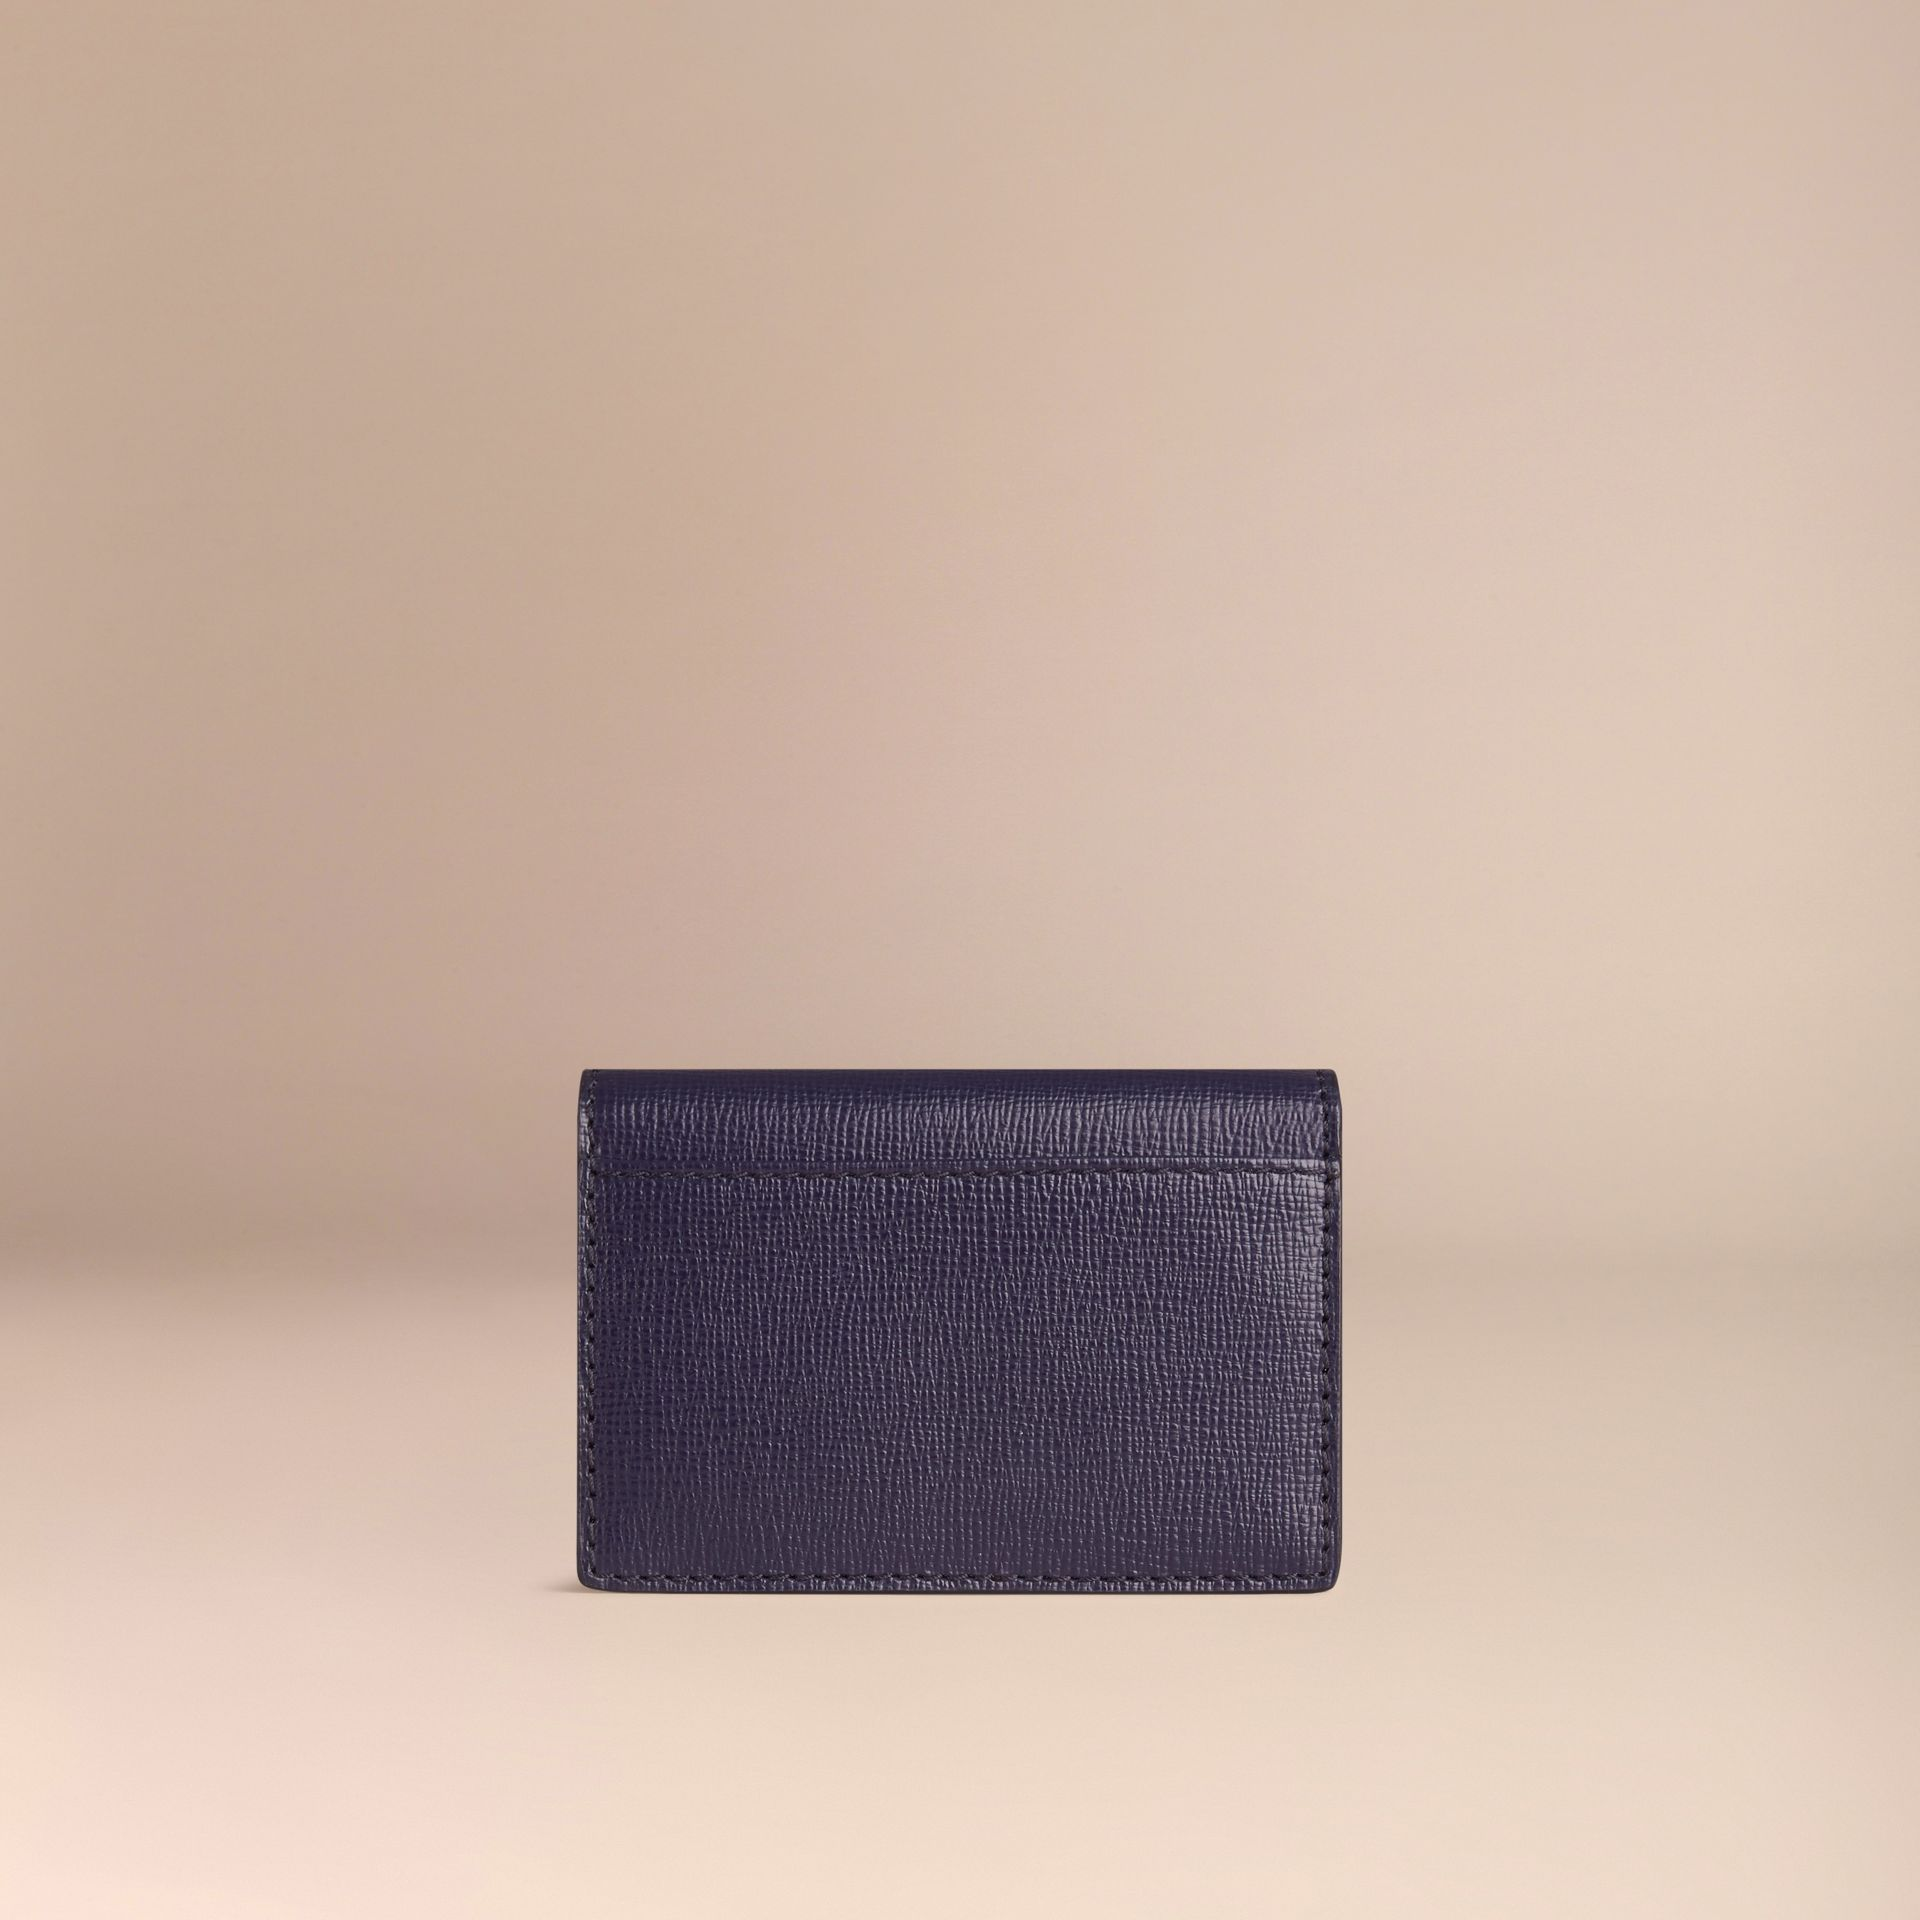 Dark navy London Leather Folding Card Case Dark Navy - gallery image 3